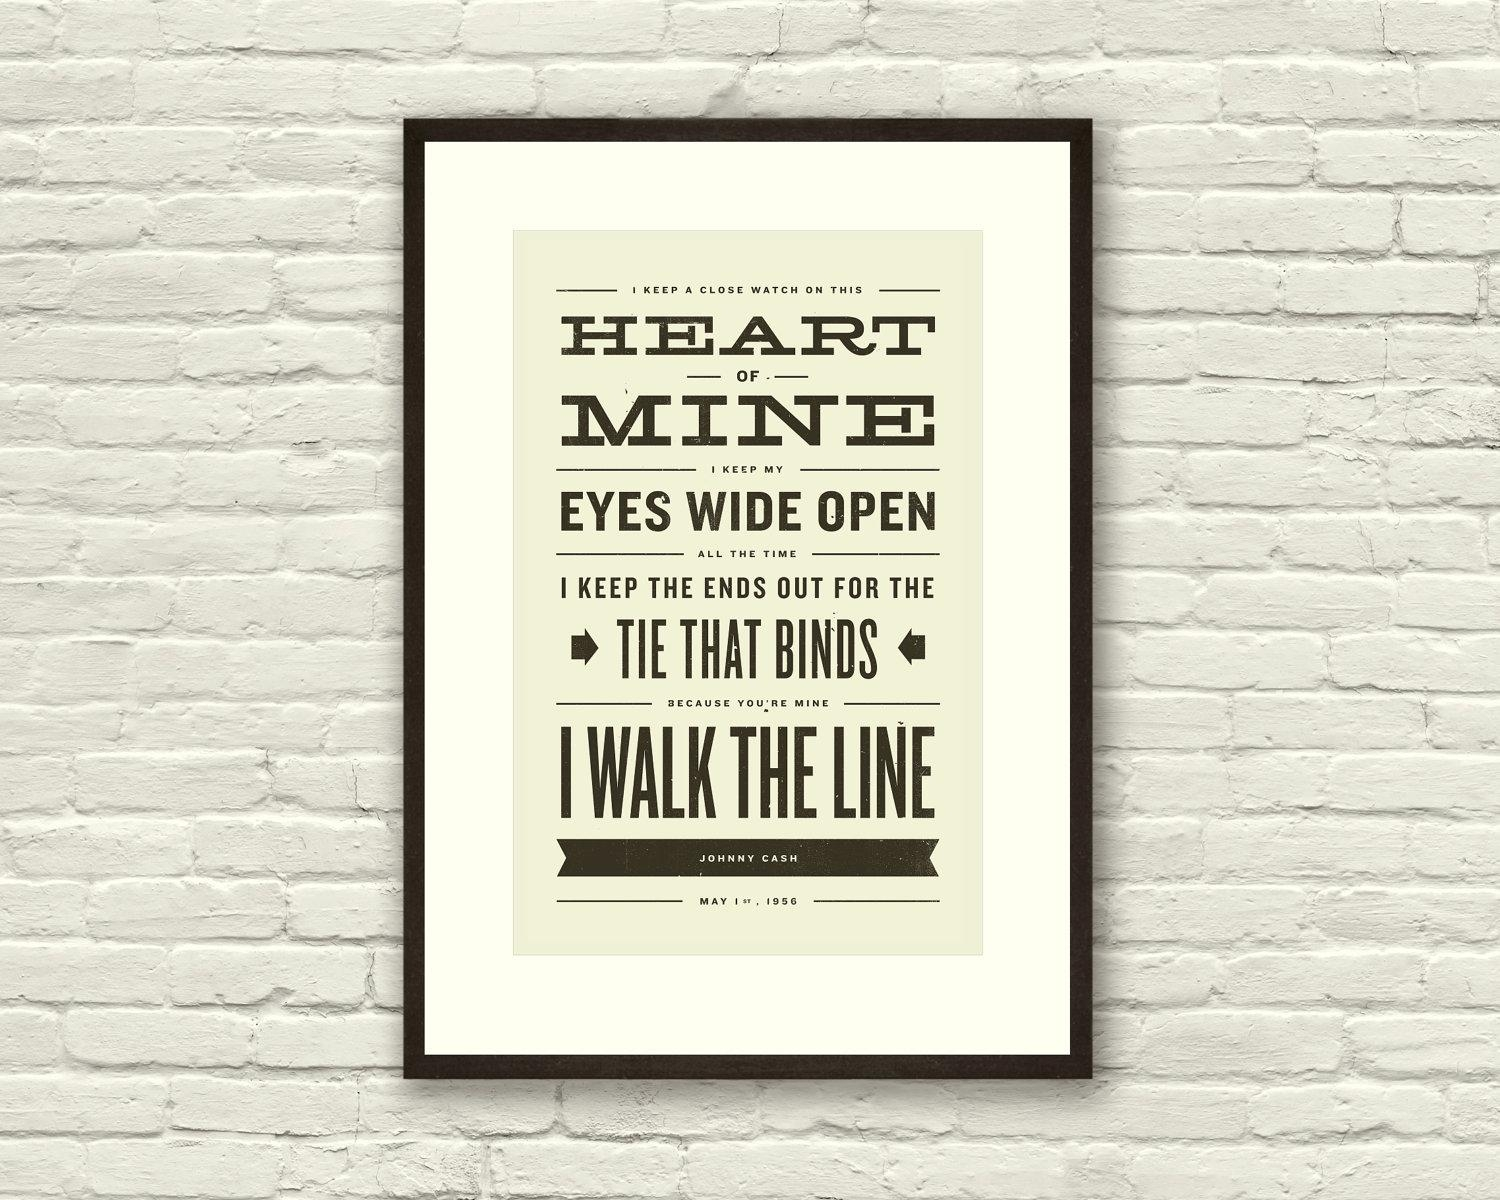 Johnny Cash Inspired Walk The Line Lyric Poster 11 X17 Inside Johnny Cash Wall Art (Image 4 of 20)